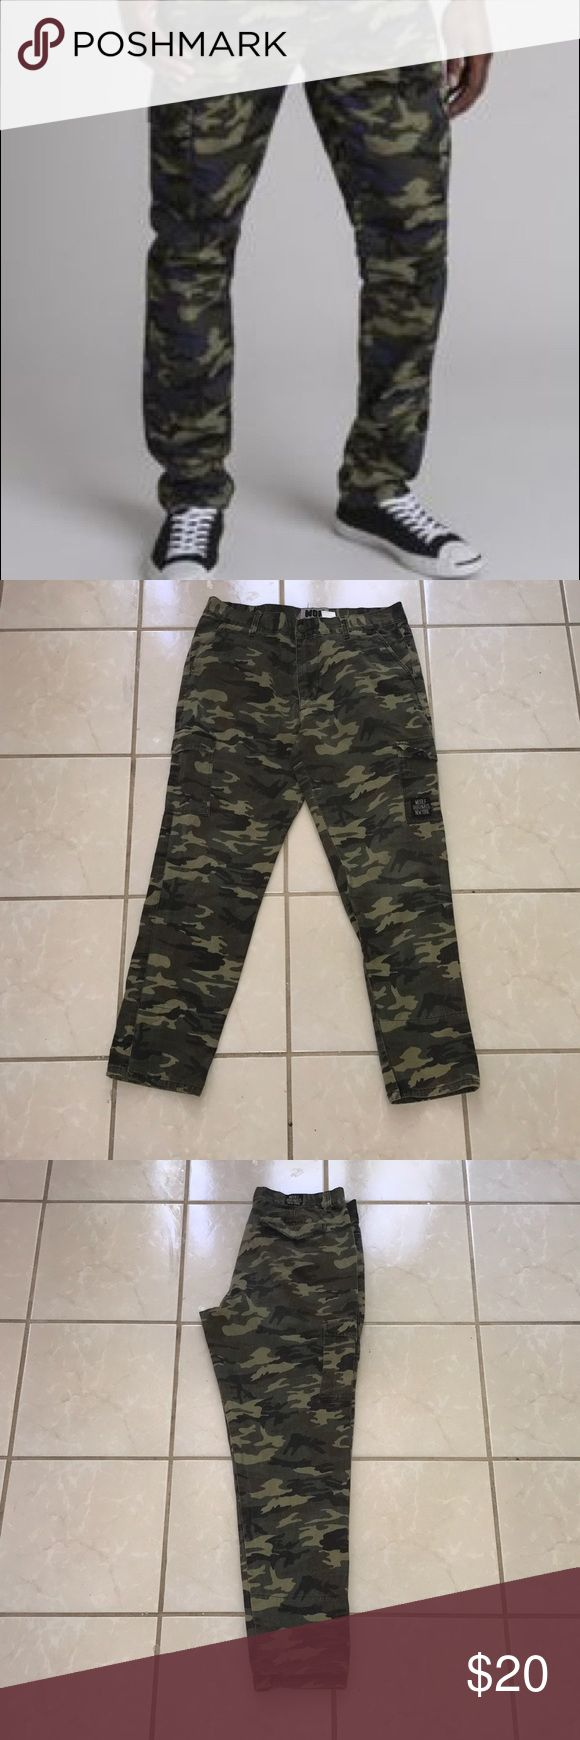 Woolf Originals NY Camo Jeans MENS Camouflage Khaki Jeans Jeans Slim Straight